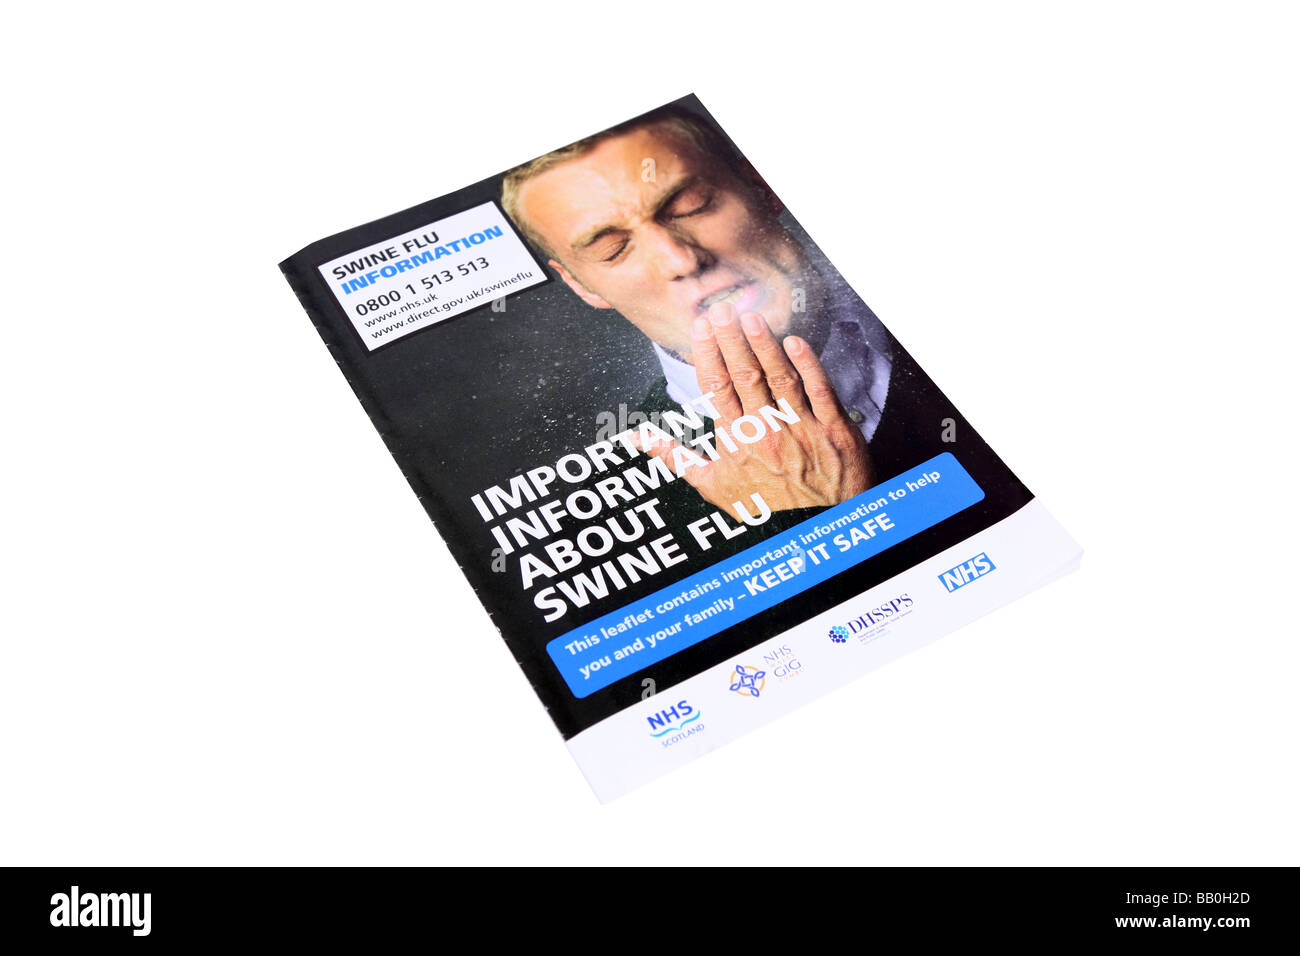 Information Pamflet on Swine Flu sent out by the British Government - Stock Image